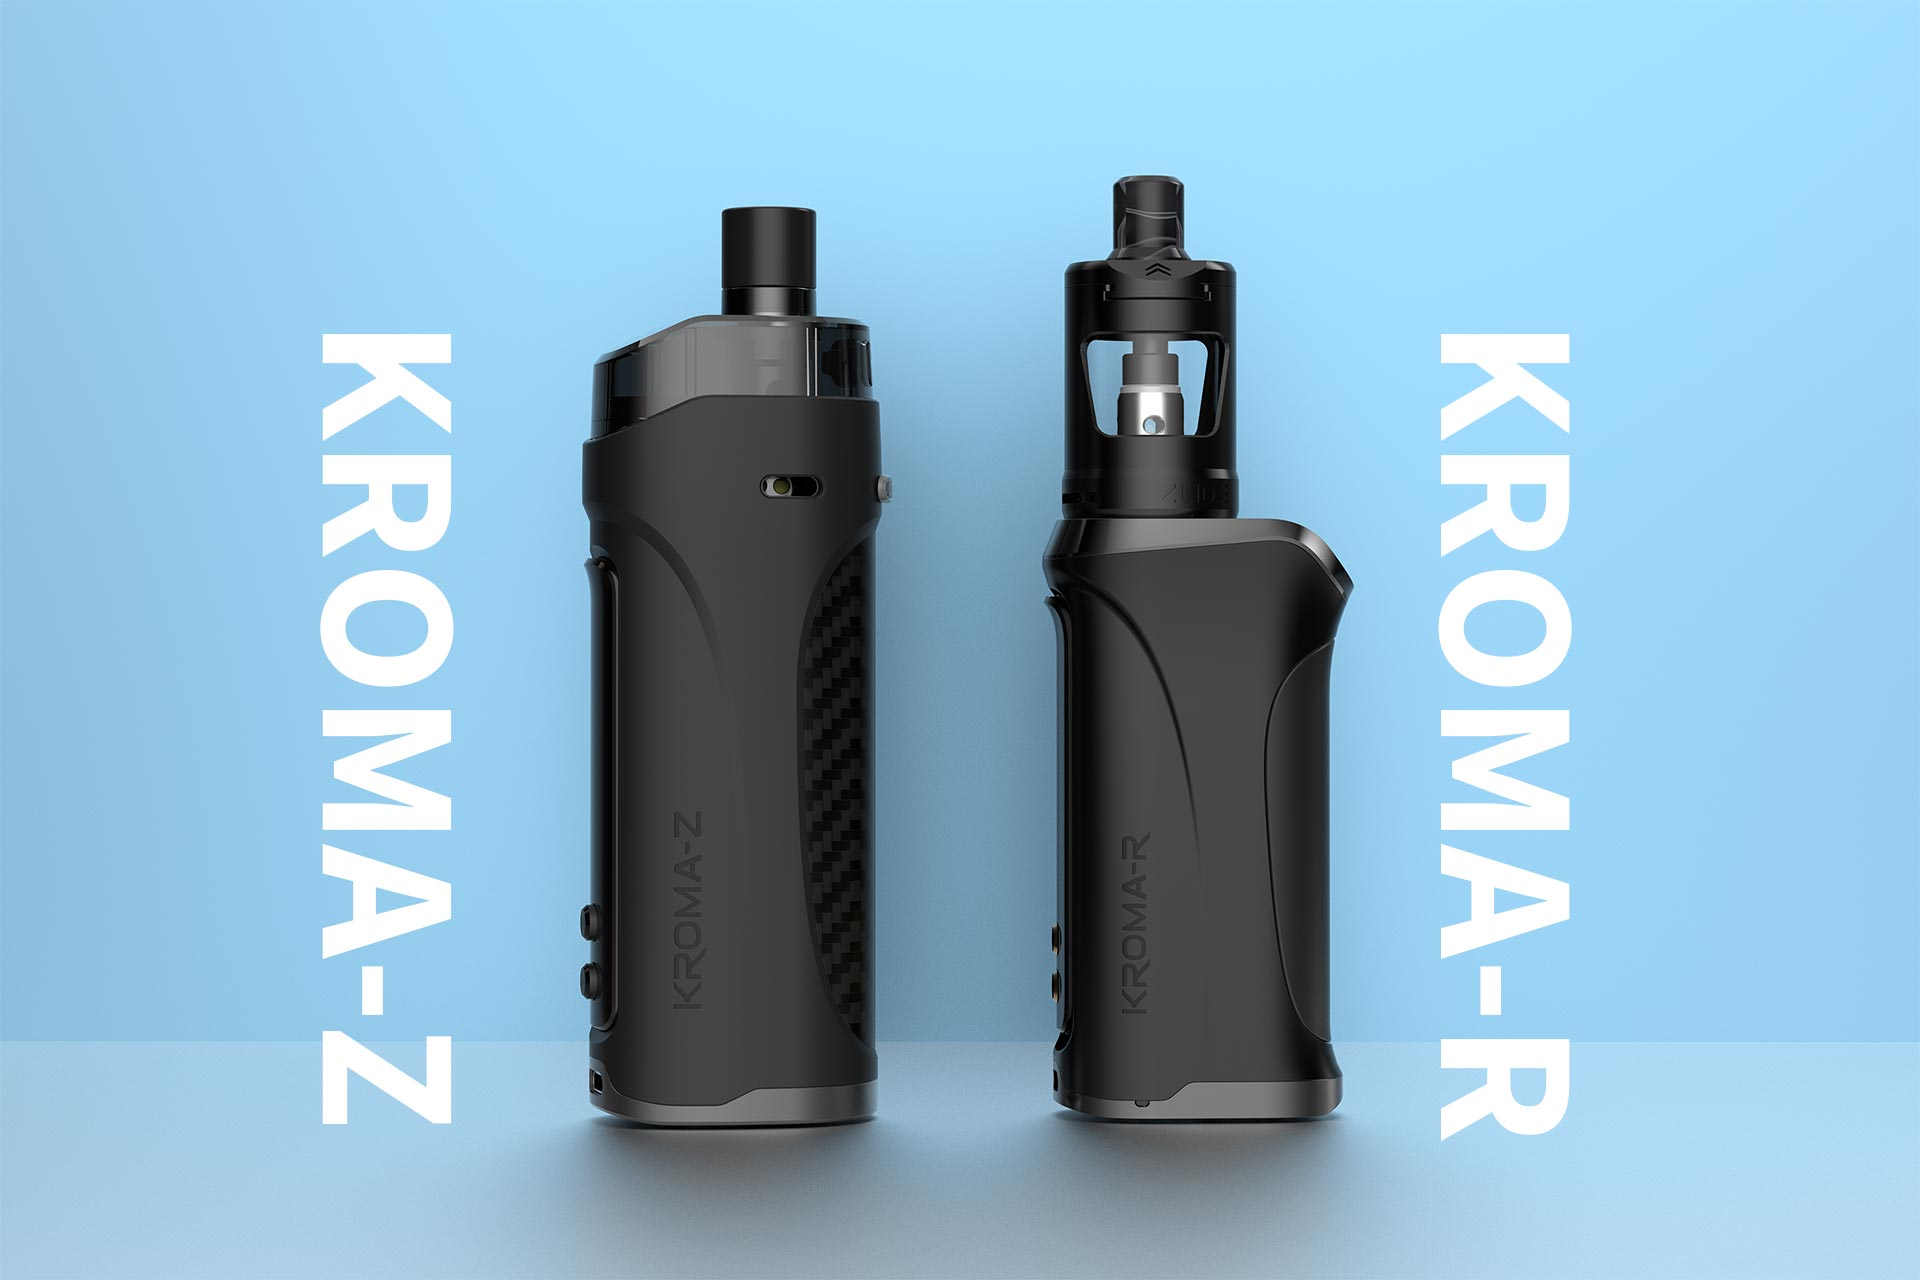 Kroma-Z & Kroma-R: What's the right one for you?